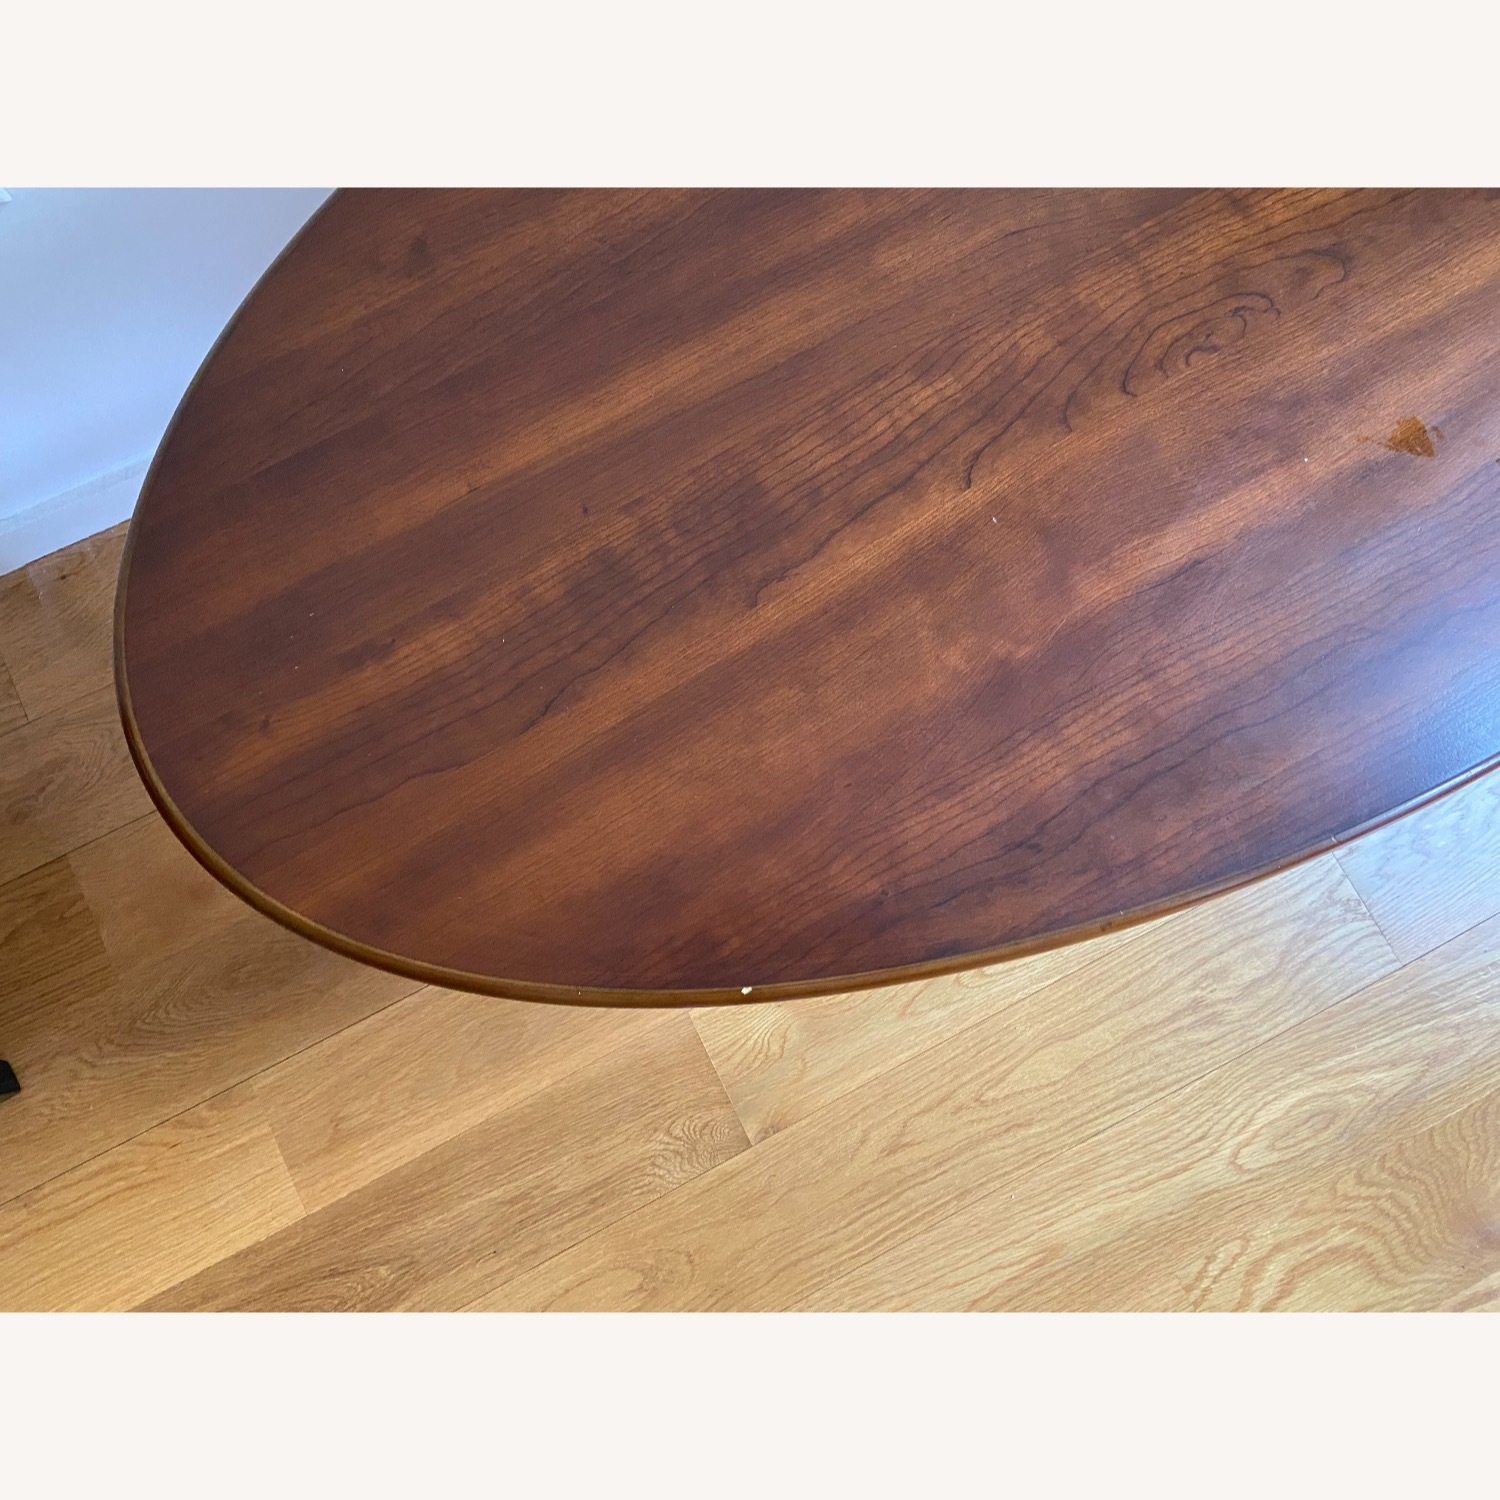 Pier 1 Coffee Table - image-3